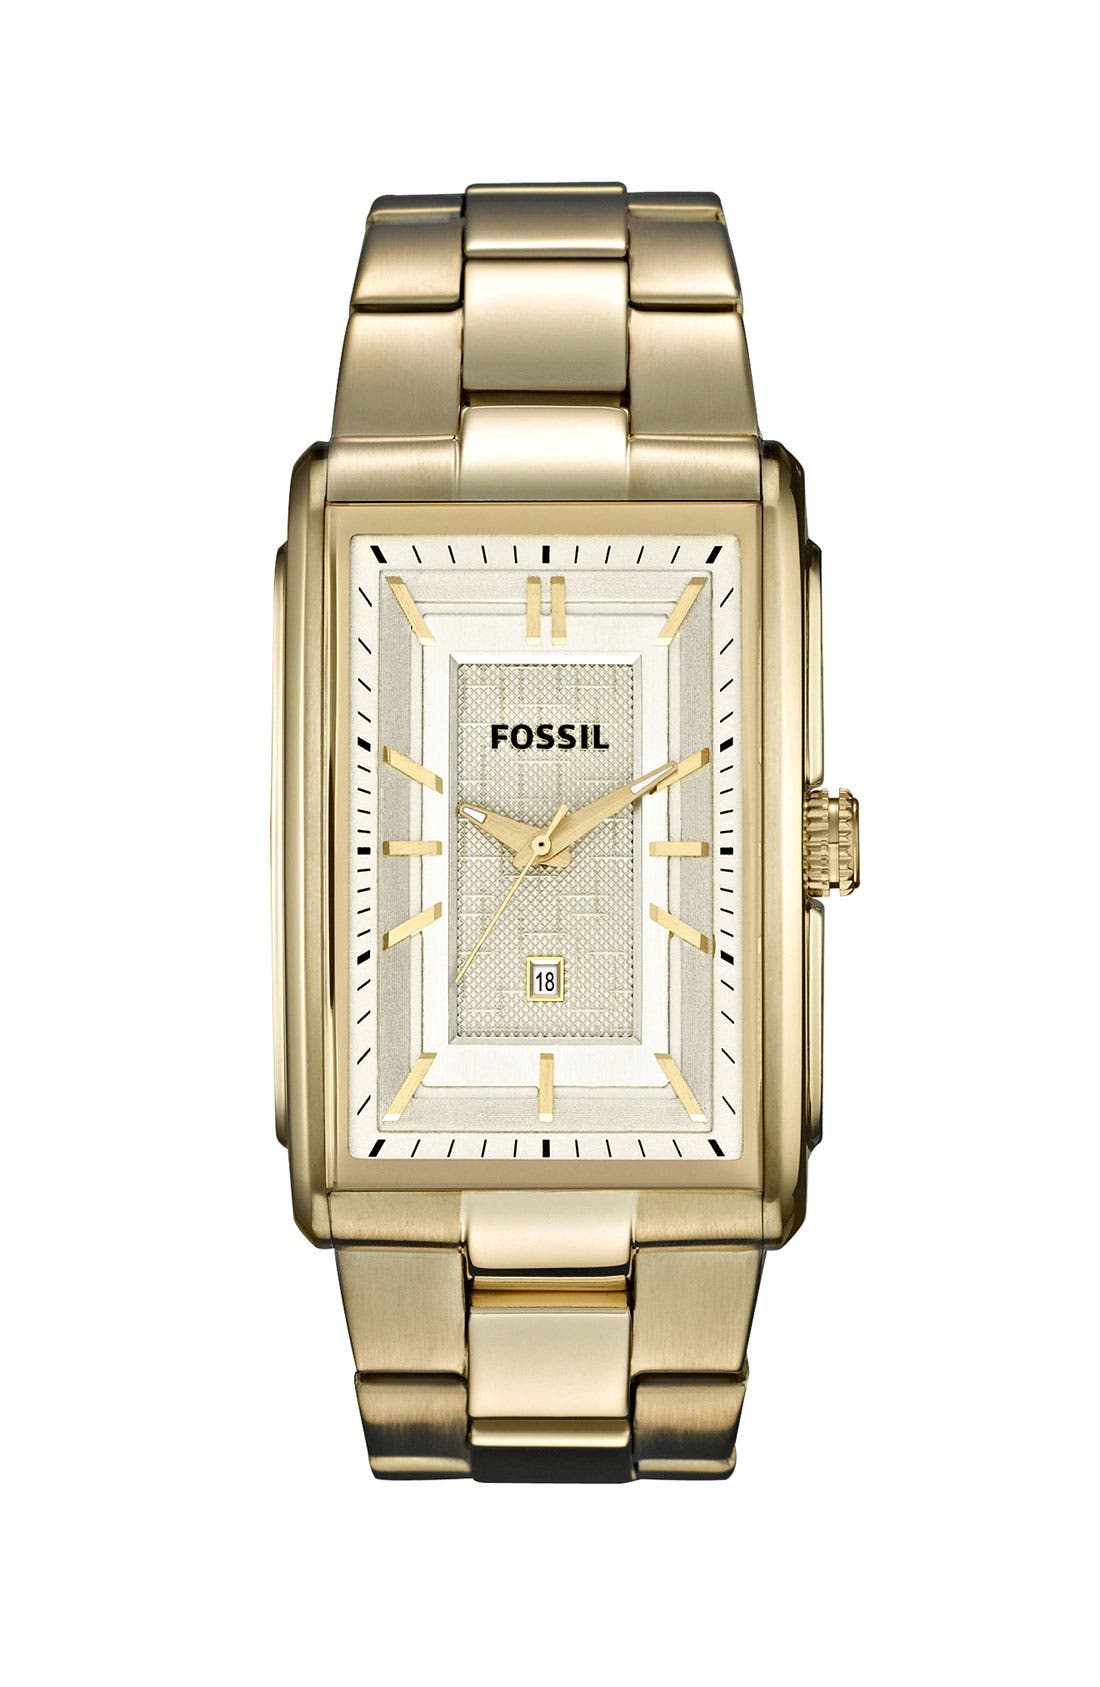 Main Image - Fossil 'Truman' Rectangular Bracelet Watch, 33mm x 49mm